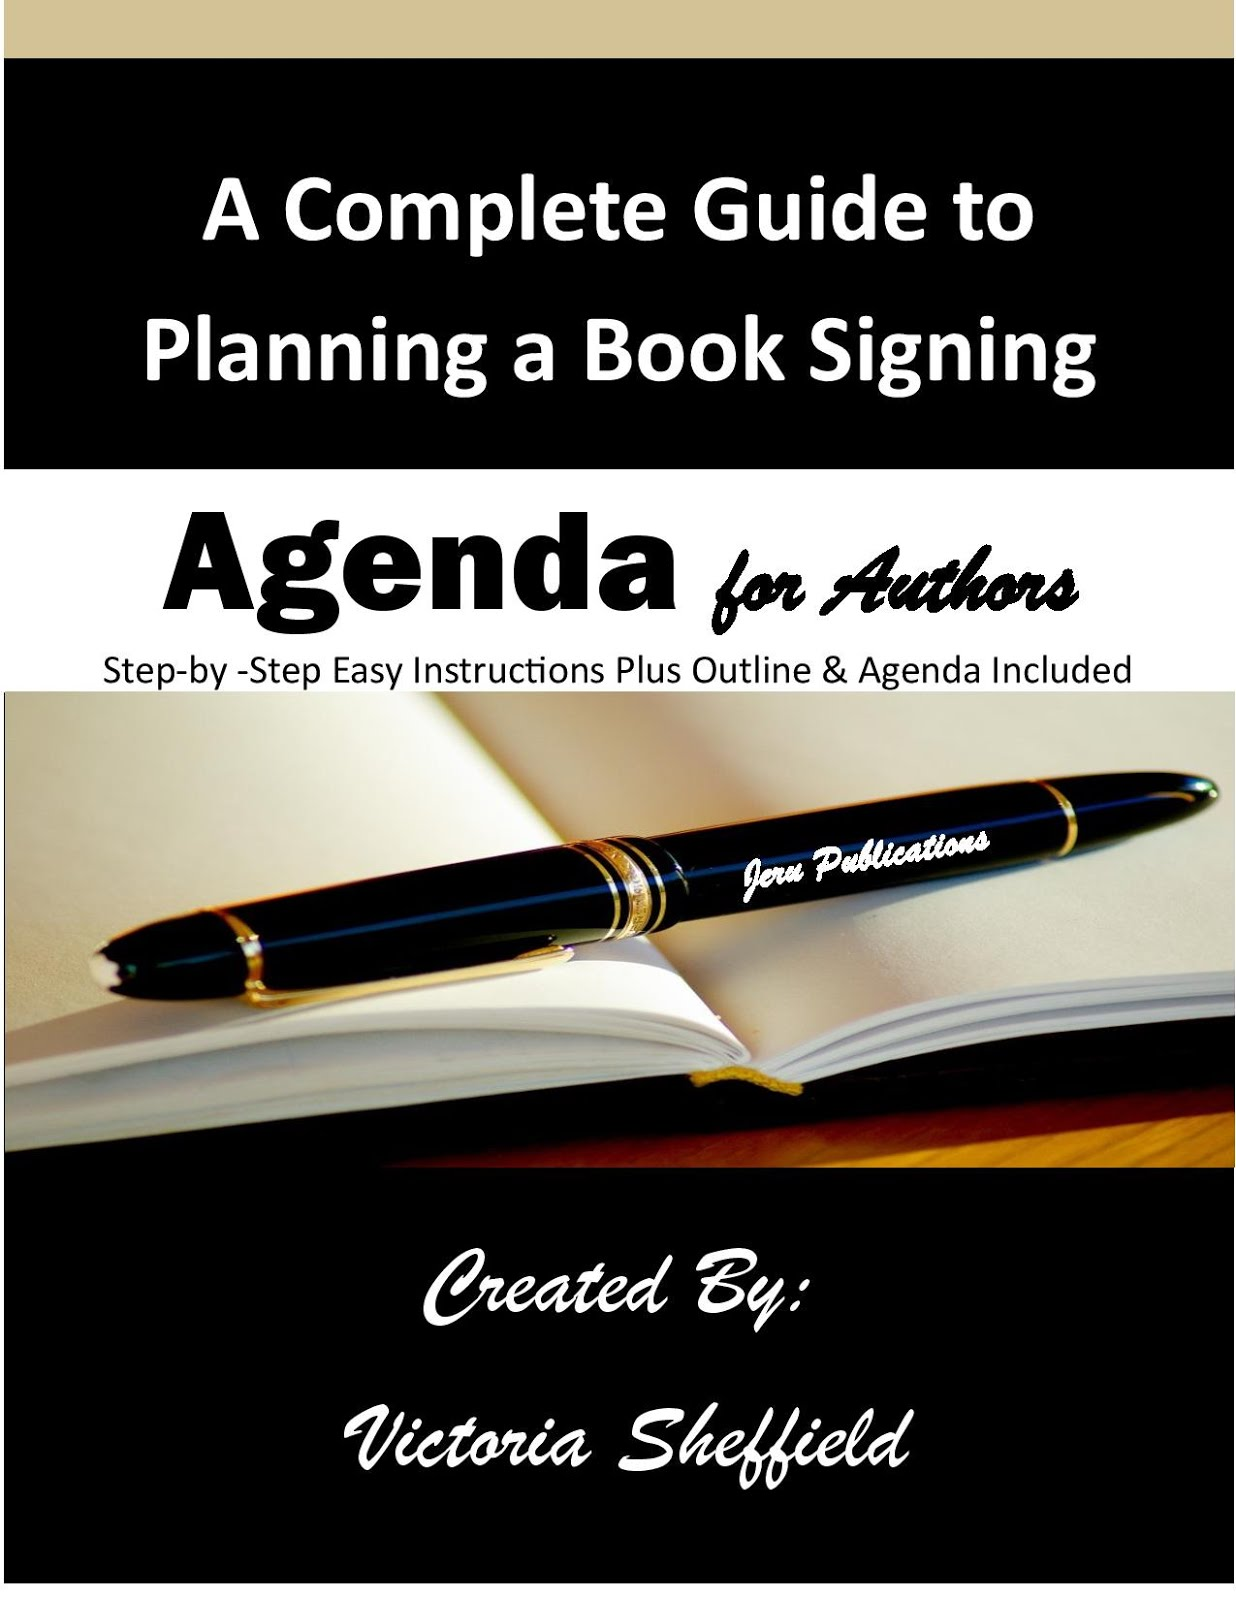 Learn how to plan the perfect book signing.